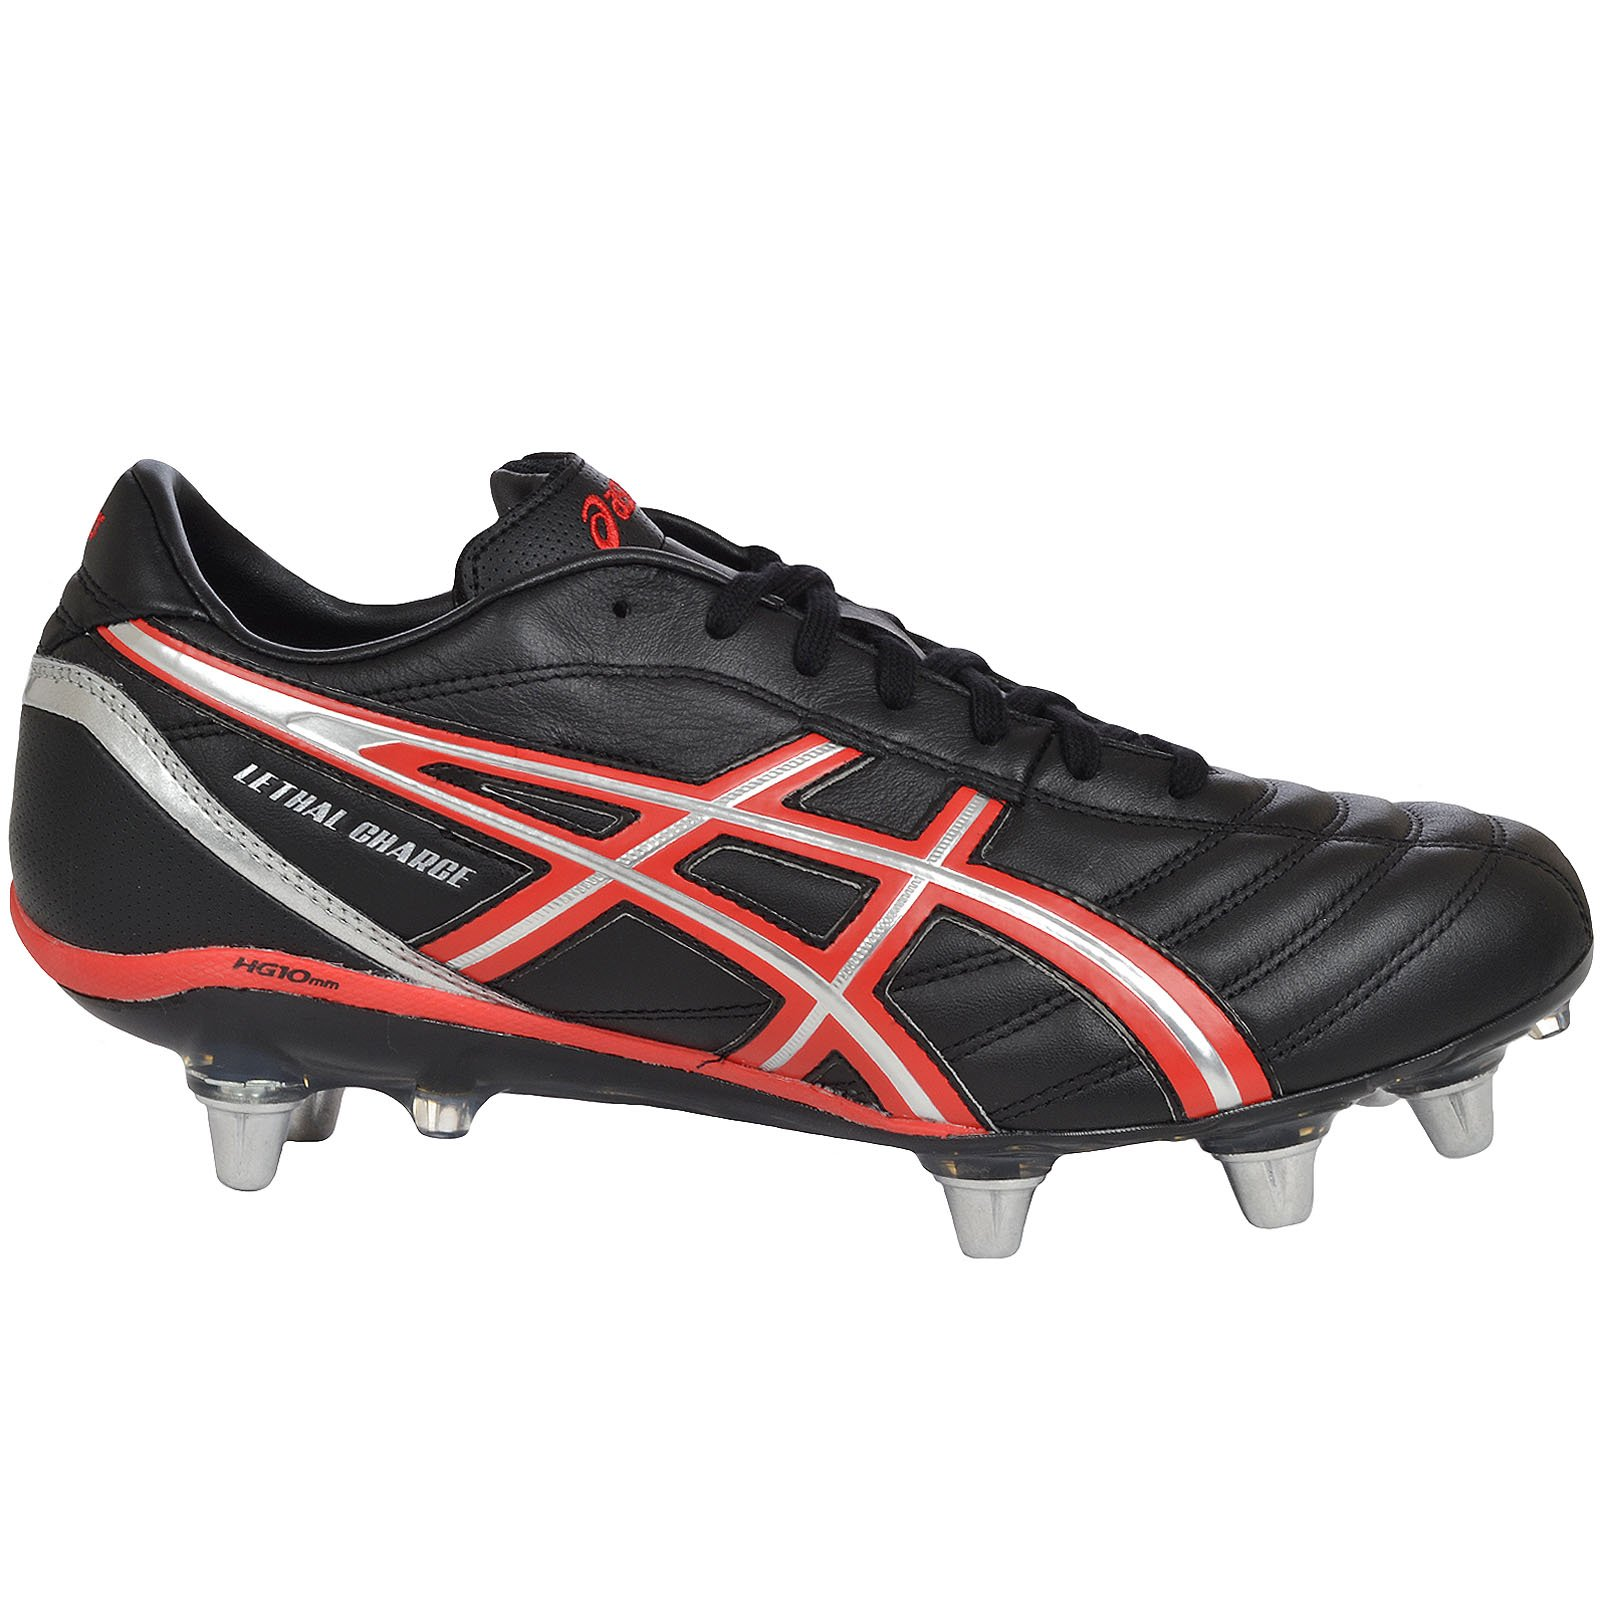 ASICS Lethal Charge, Men's Rugby Boots - 7US